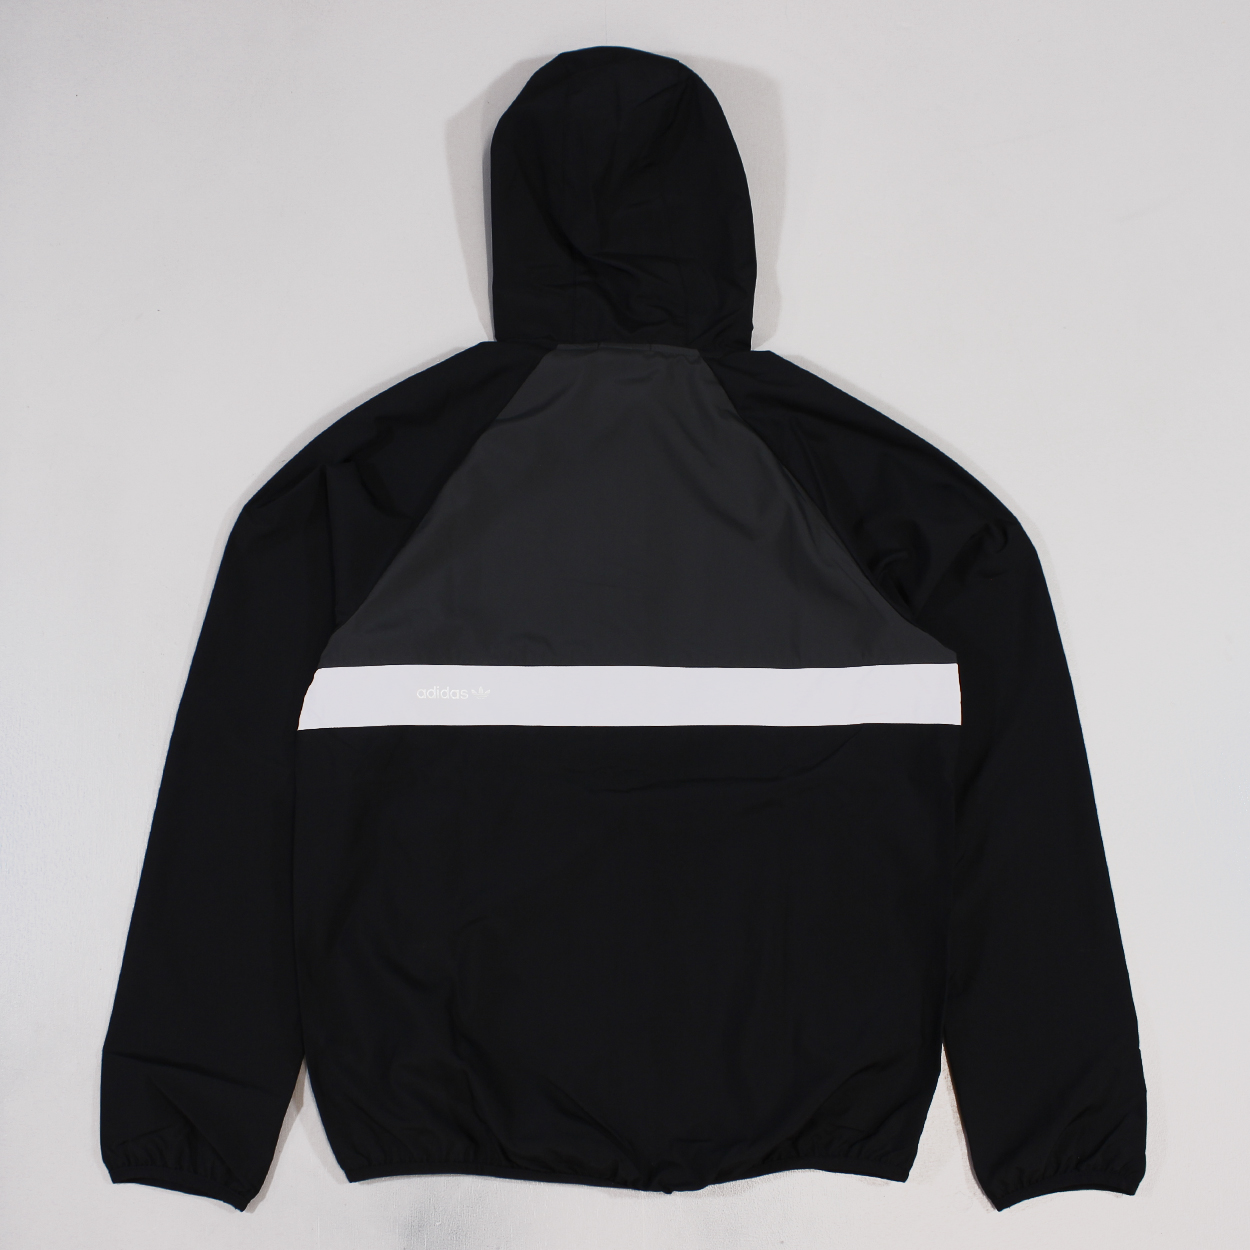 info for e9eef 4cccc Adidas ADV Wind Jacket Black